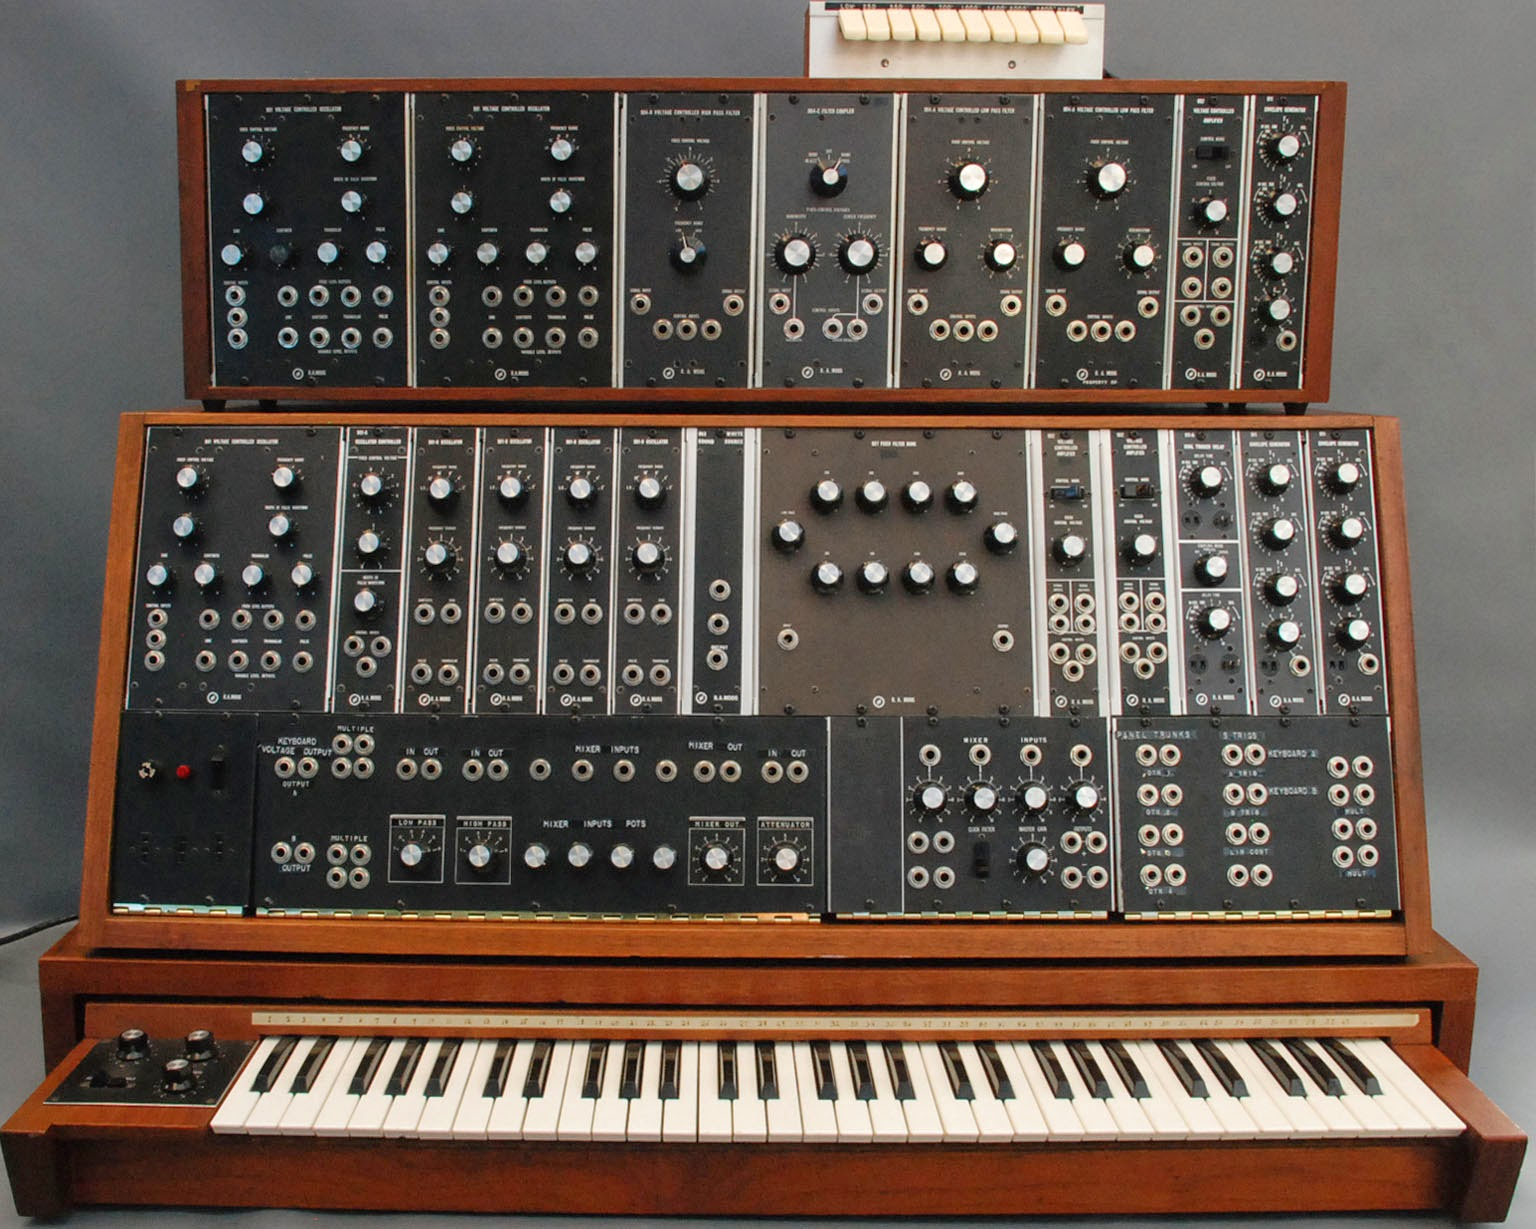 jondent exploring electronic music who 39 s the girl playing that 1960ish moog modular. Black Bedroom Furniture Sets. Home Design Ideas